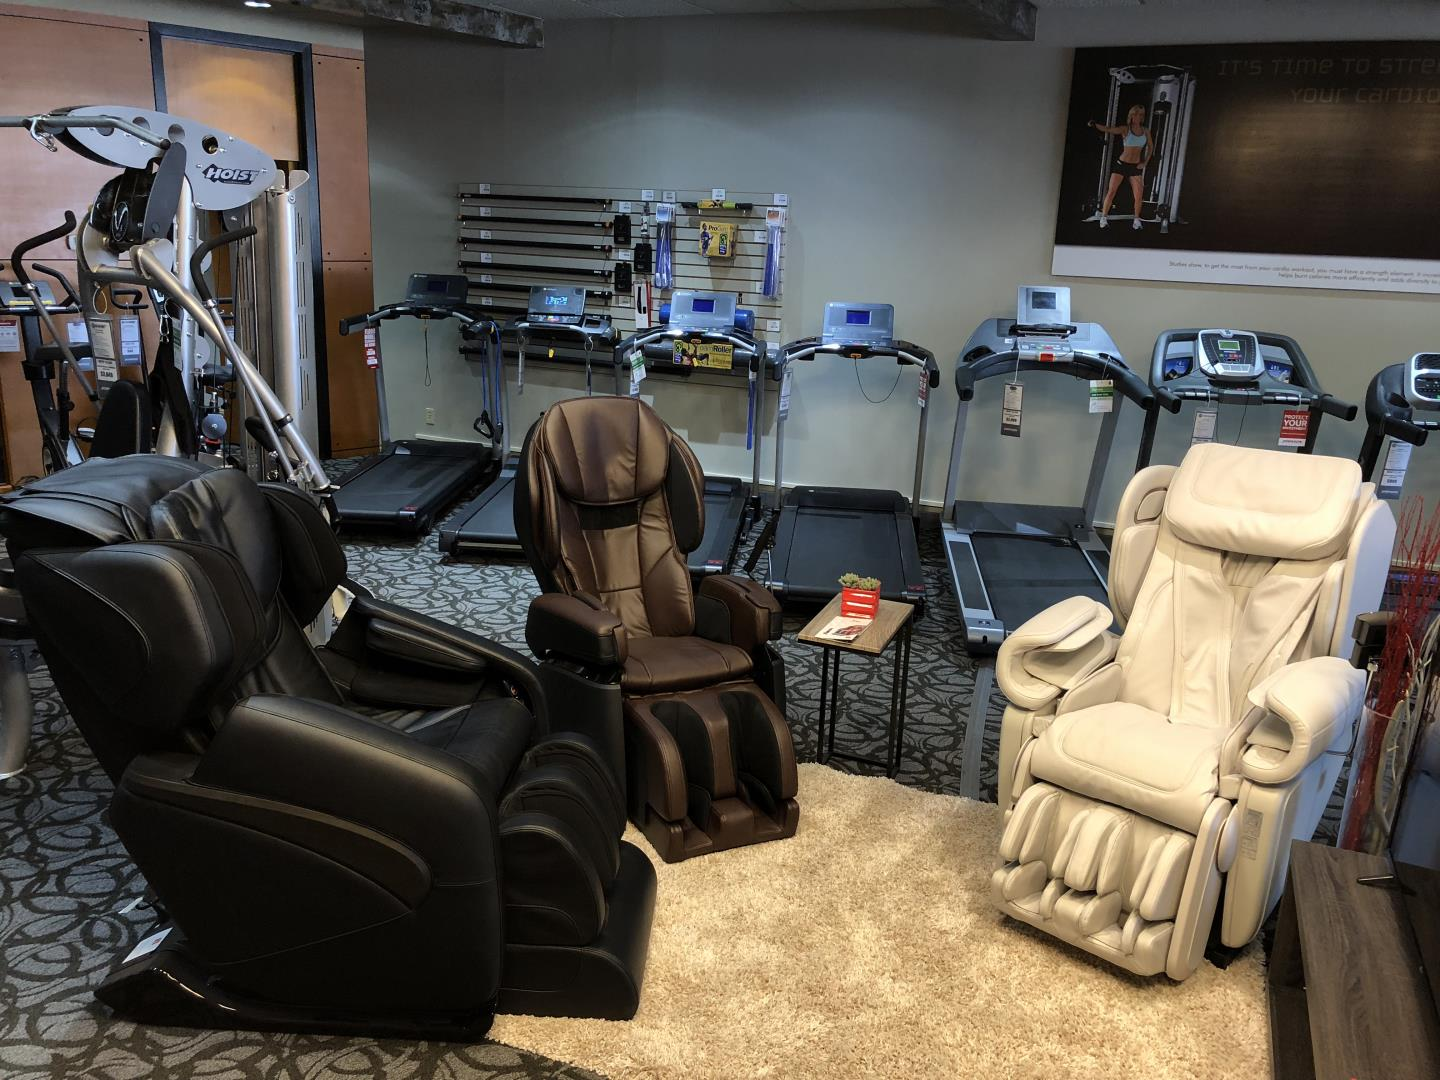 Johnson Fitness & Wellness - Edina, MN